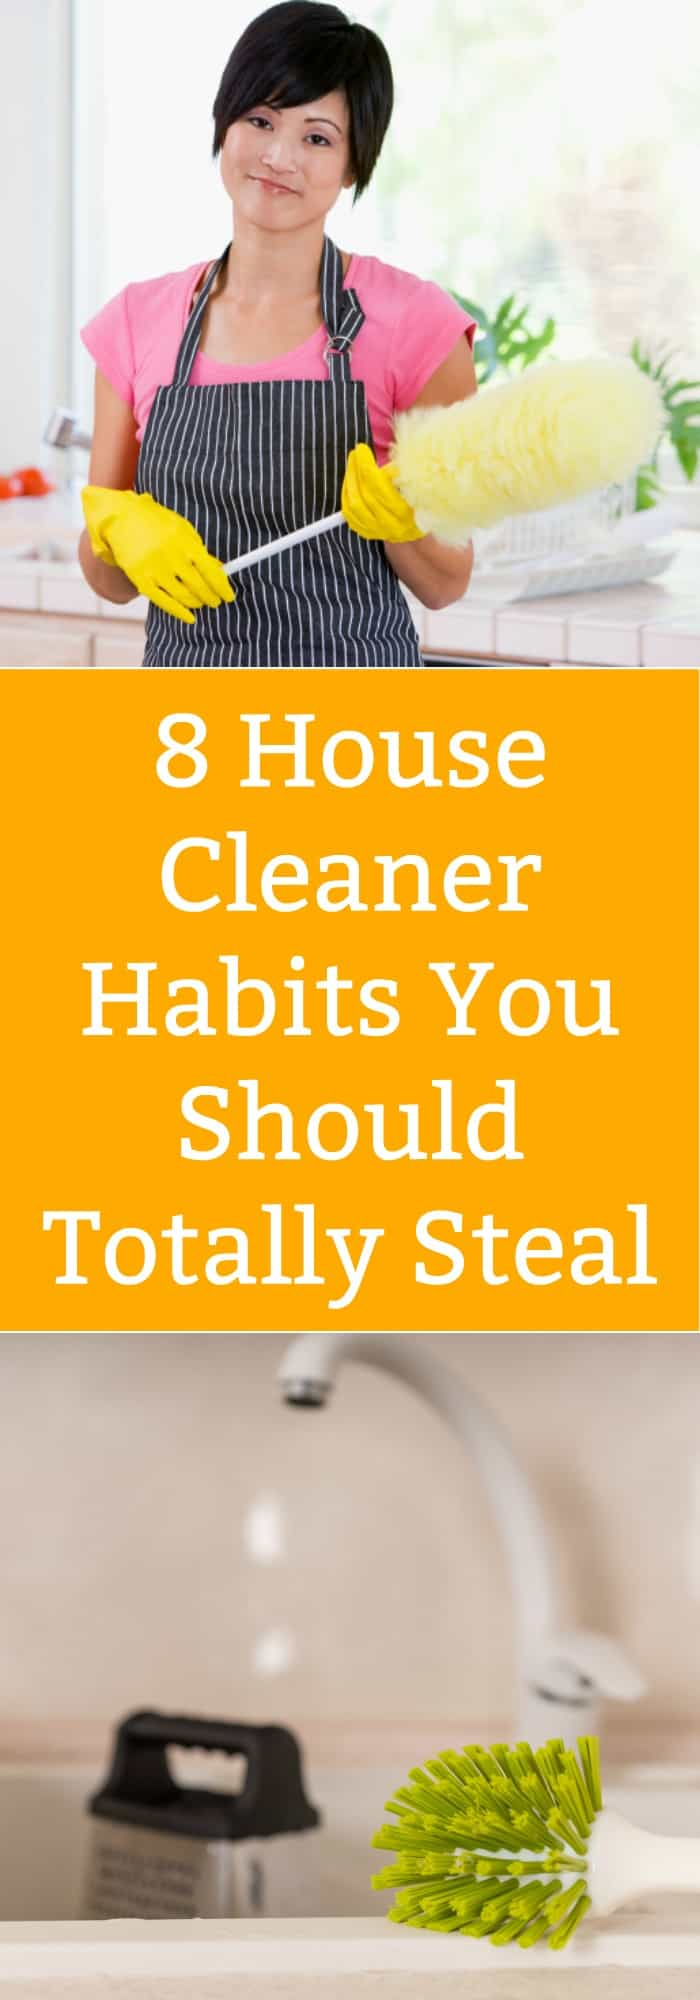 Cleaning-House Cleaner Habits You Should Steal- The Organized Mom